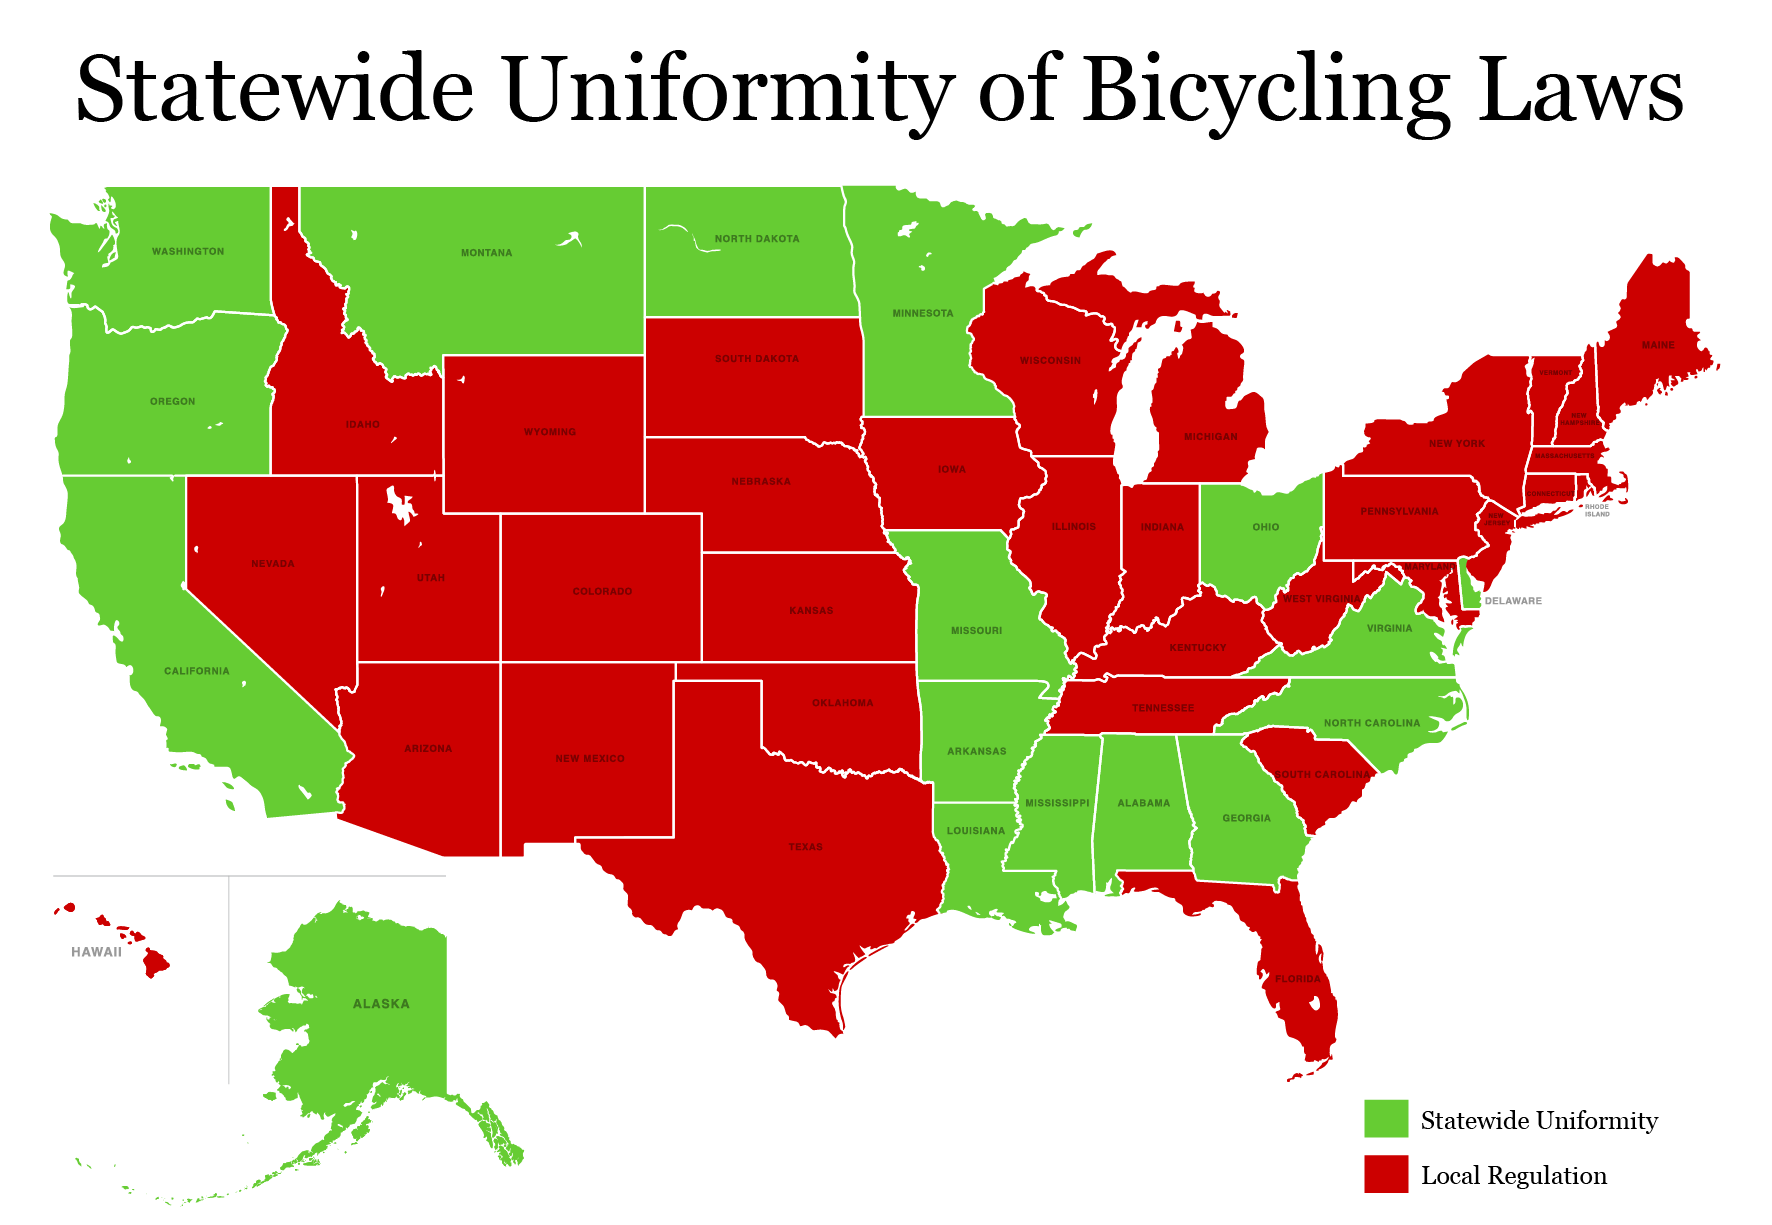 states with uniformity of bicycle laws